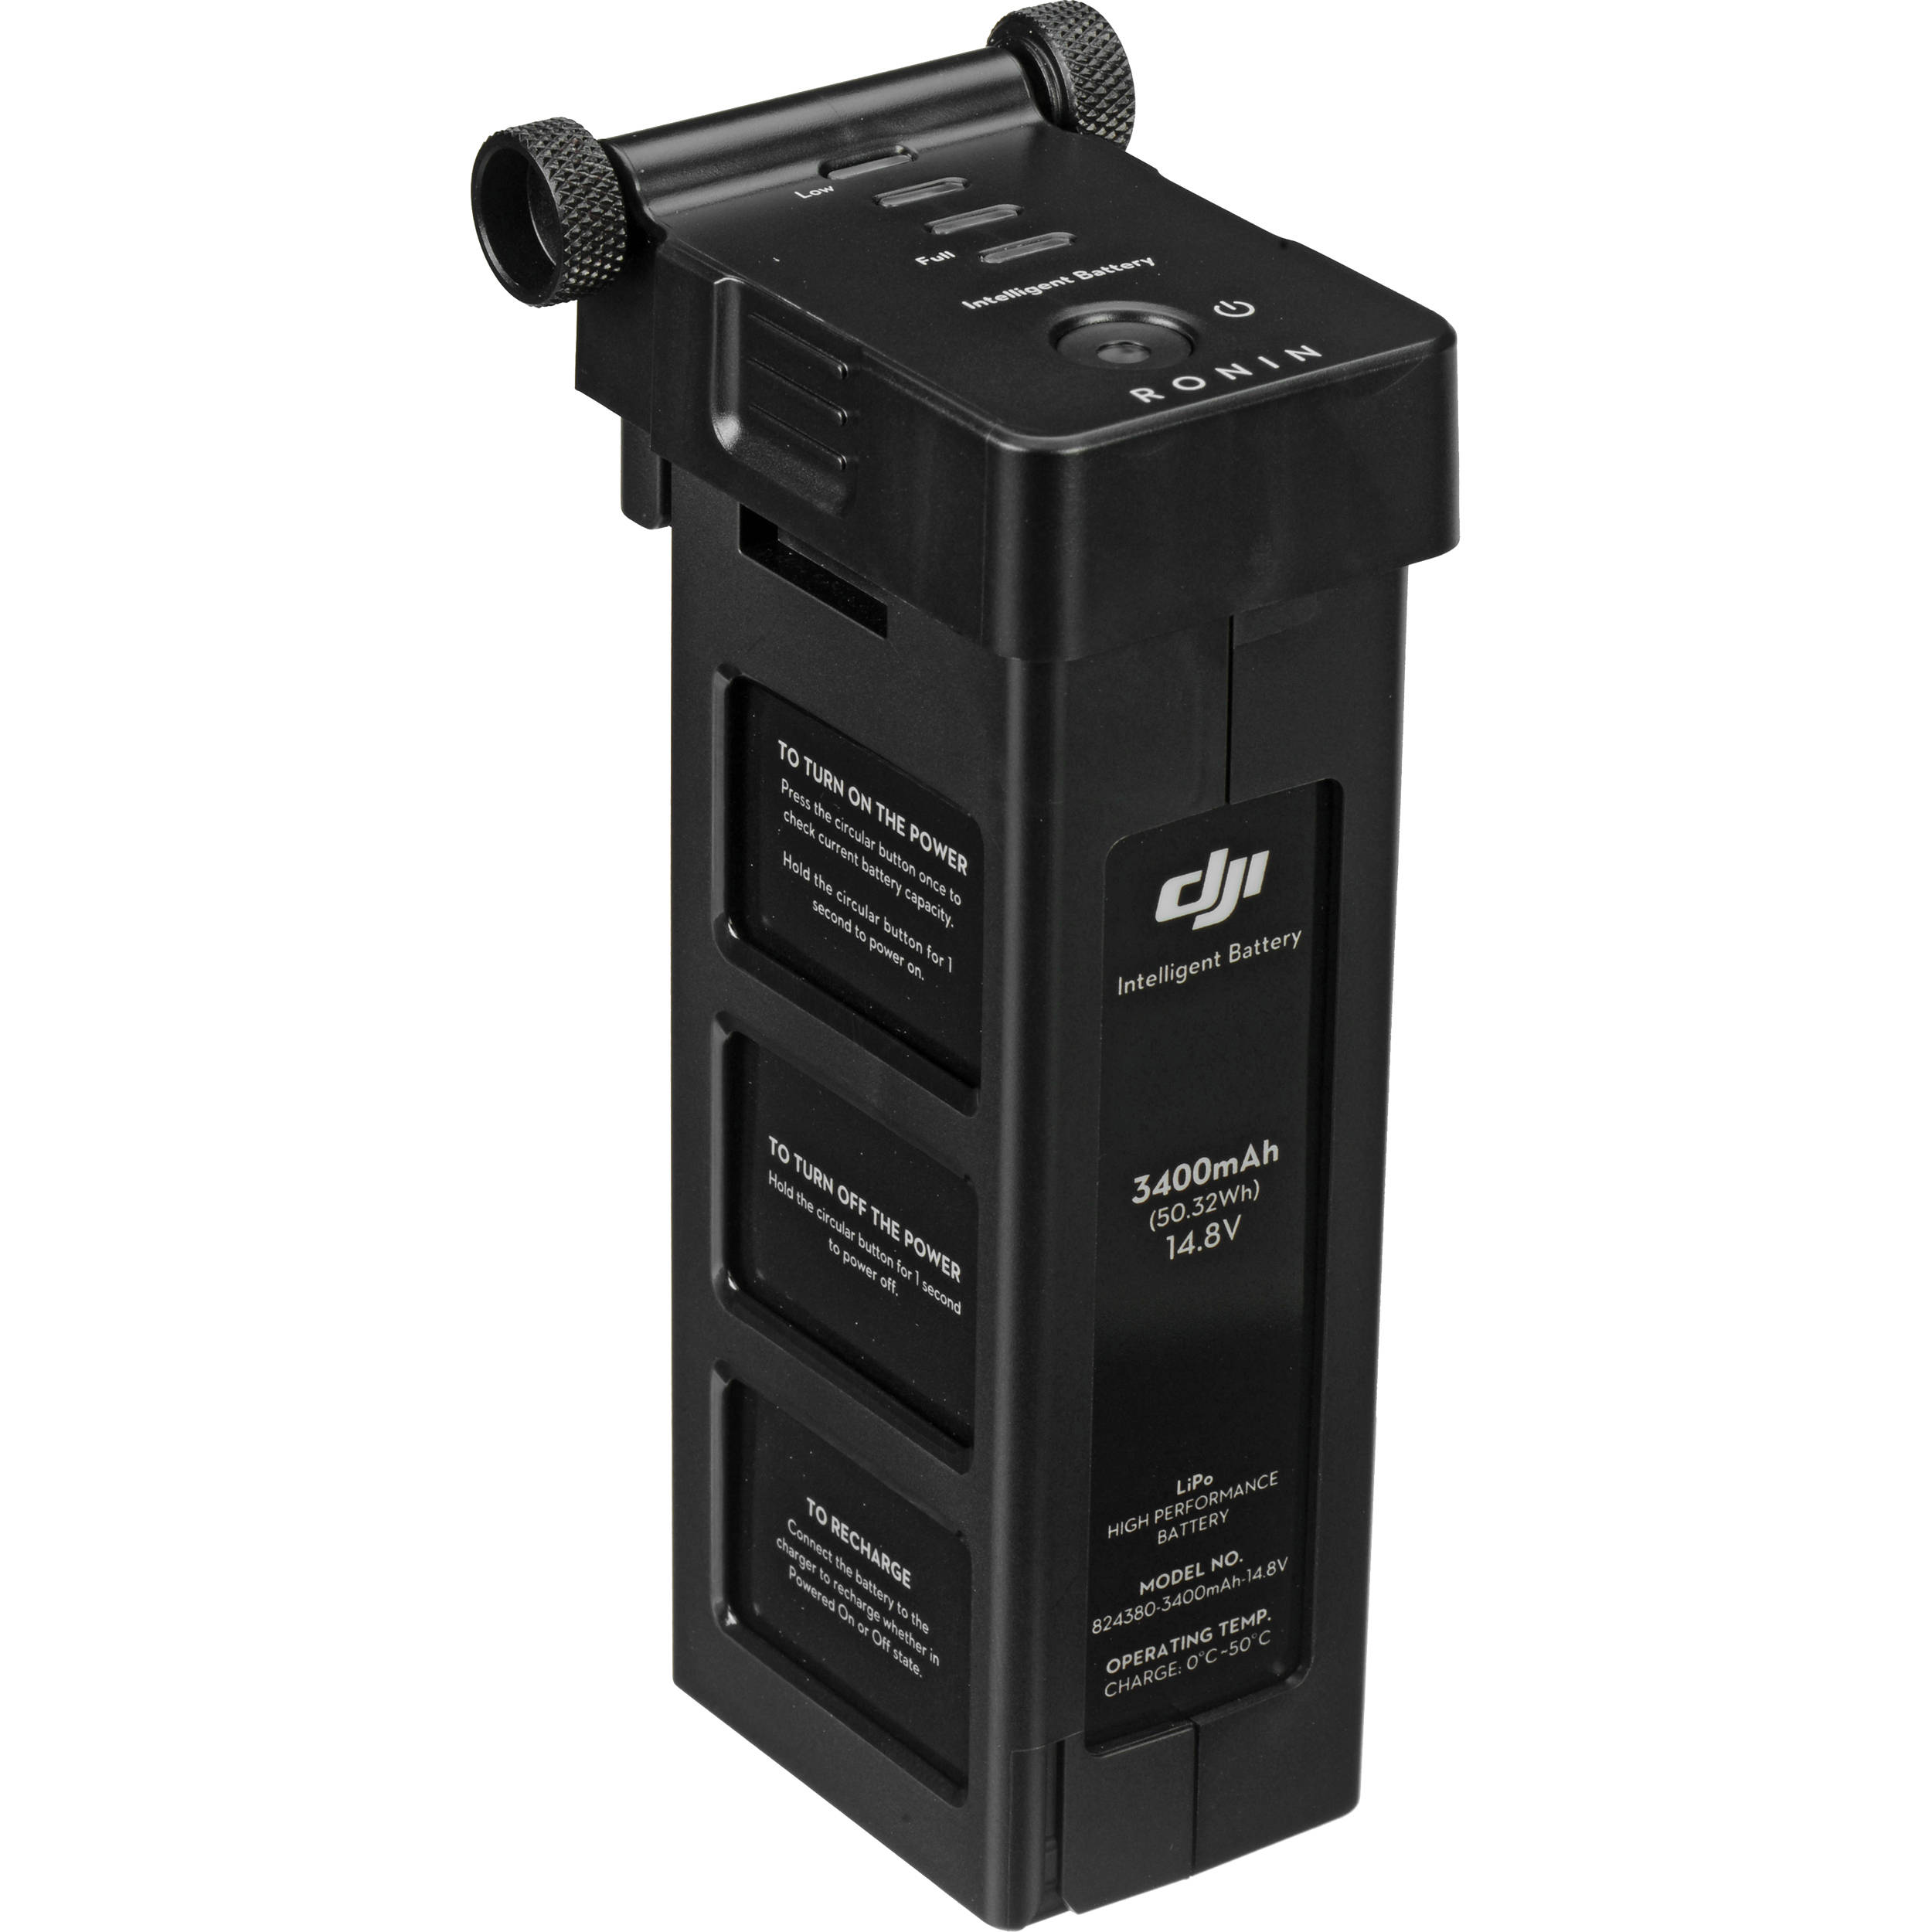 M Battery DJI Smart Battery for Ronin